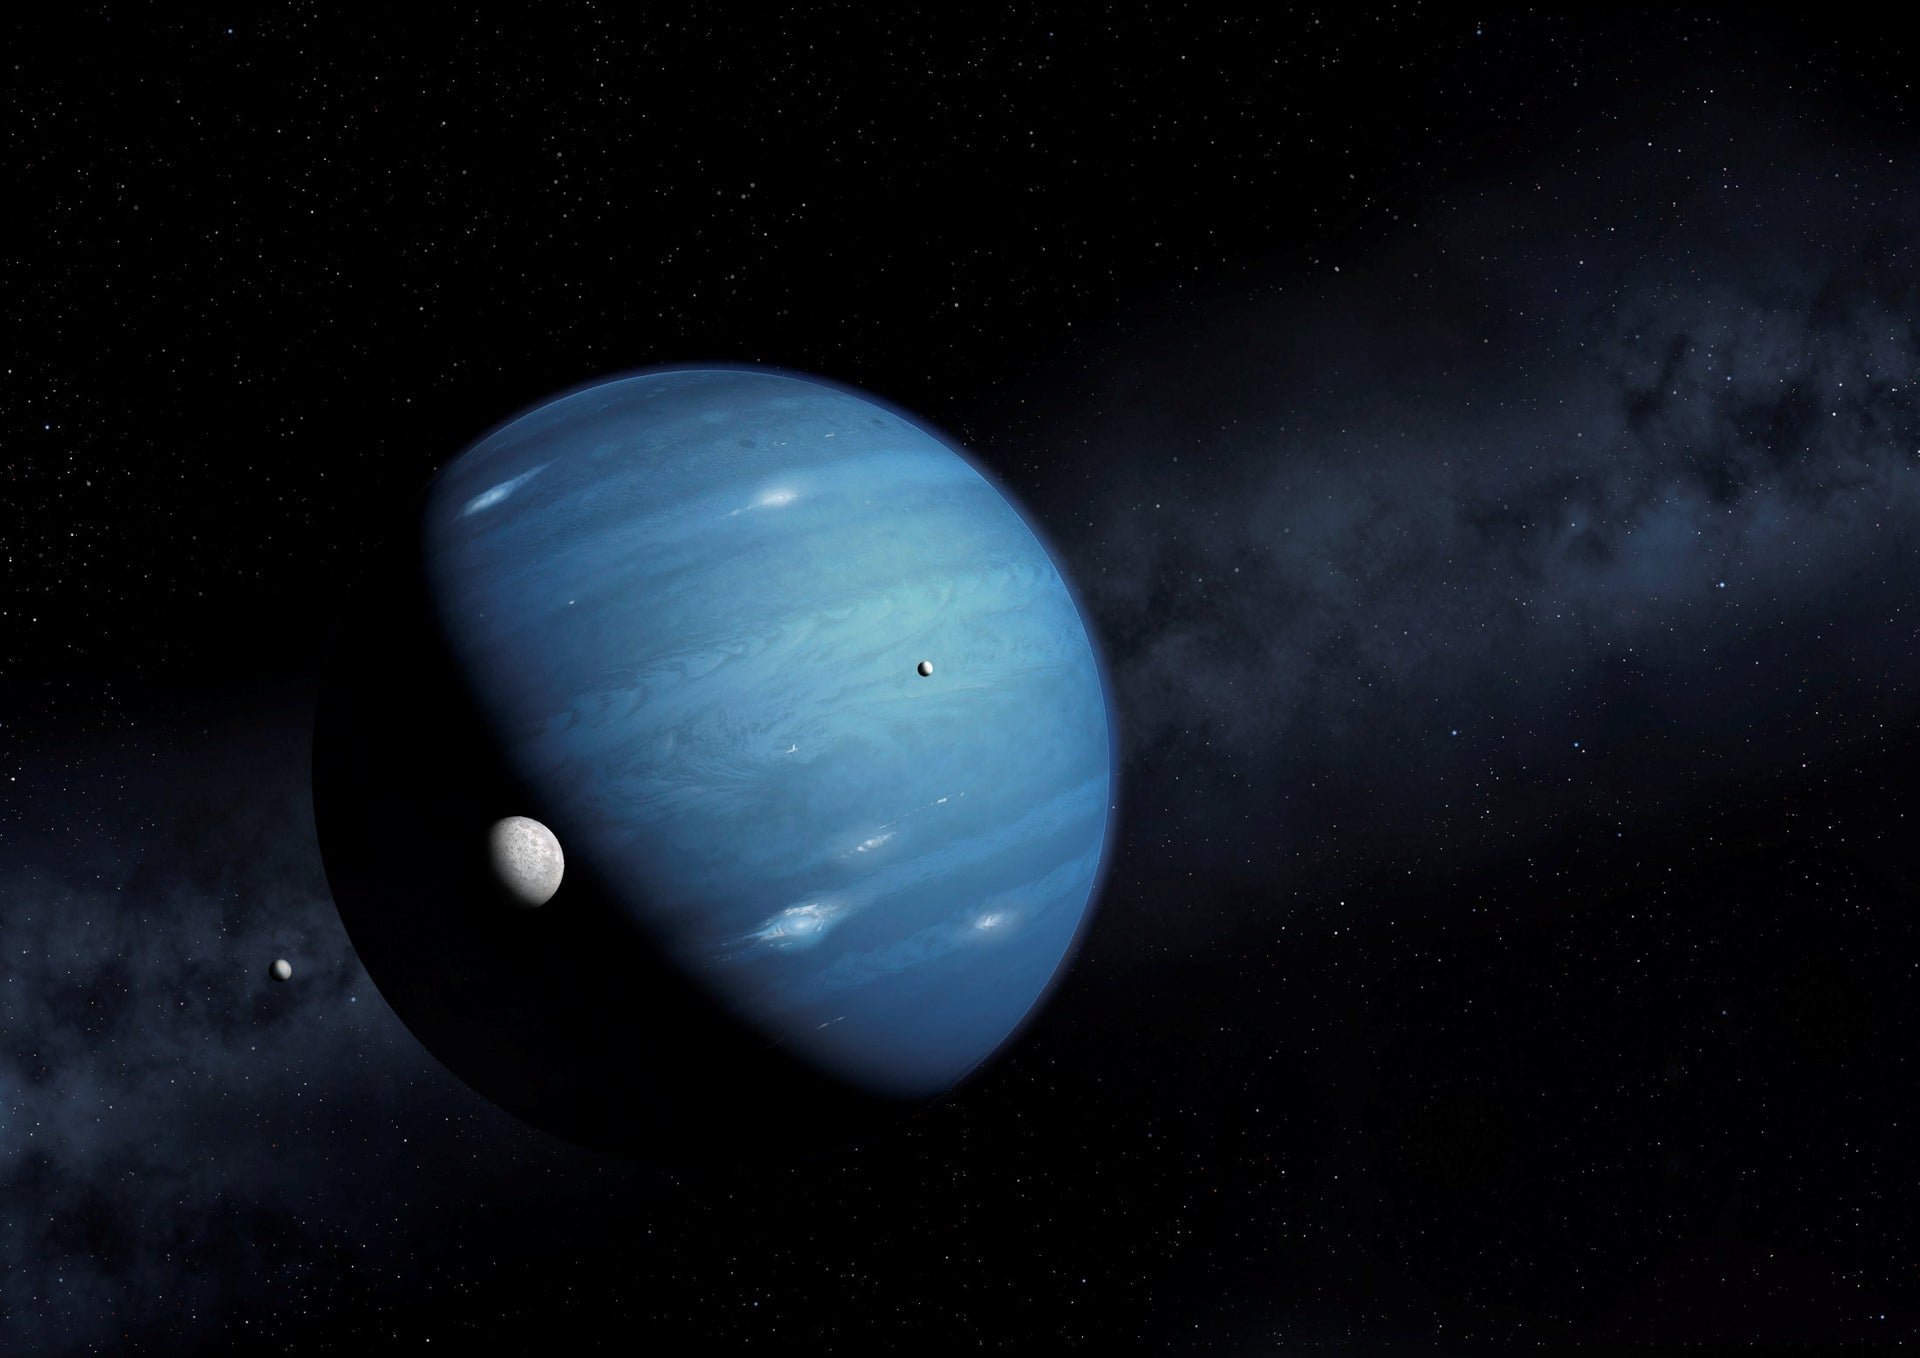 Planet Nine is a hypothesized massive planet, first proposed in 2014, that is speculated to orbit far out in the solar system, October 2016